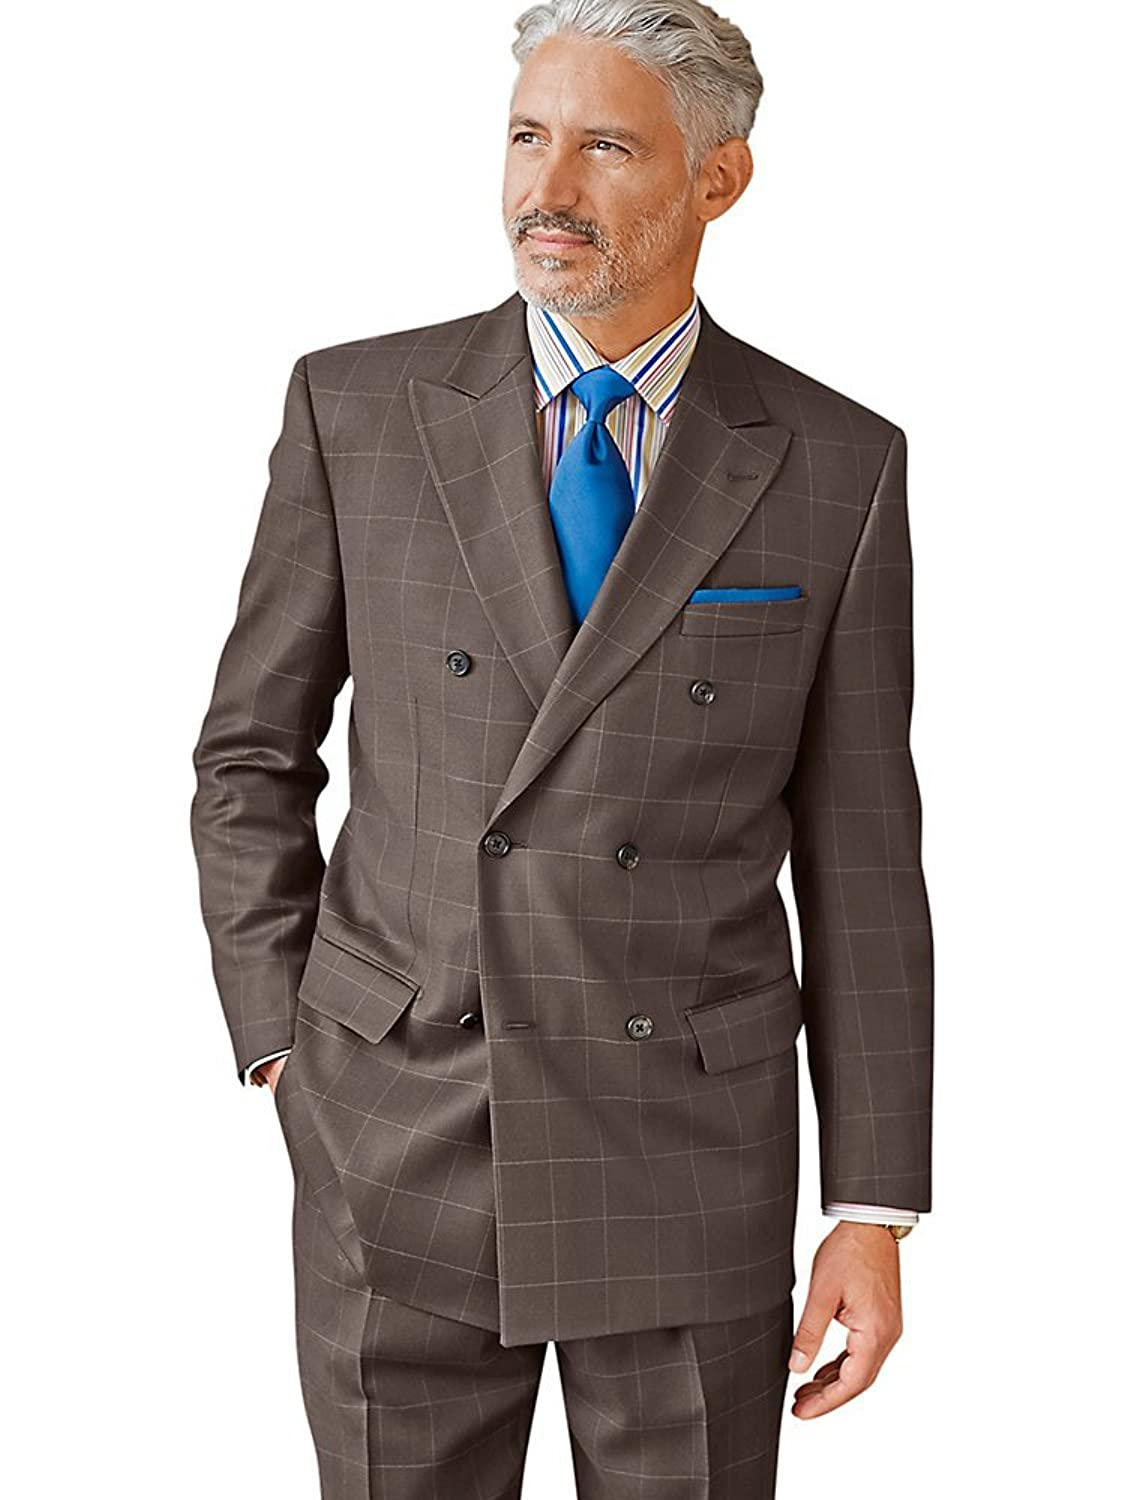 New 1940's Style Zoot Suits for Sale  Wool Double Breasted Peak Lapel Suit Separate Jacket $219.95 AT vintagedancer.com